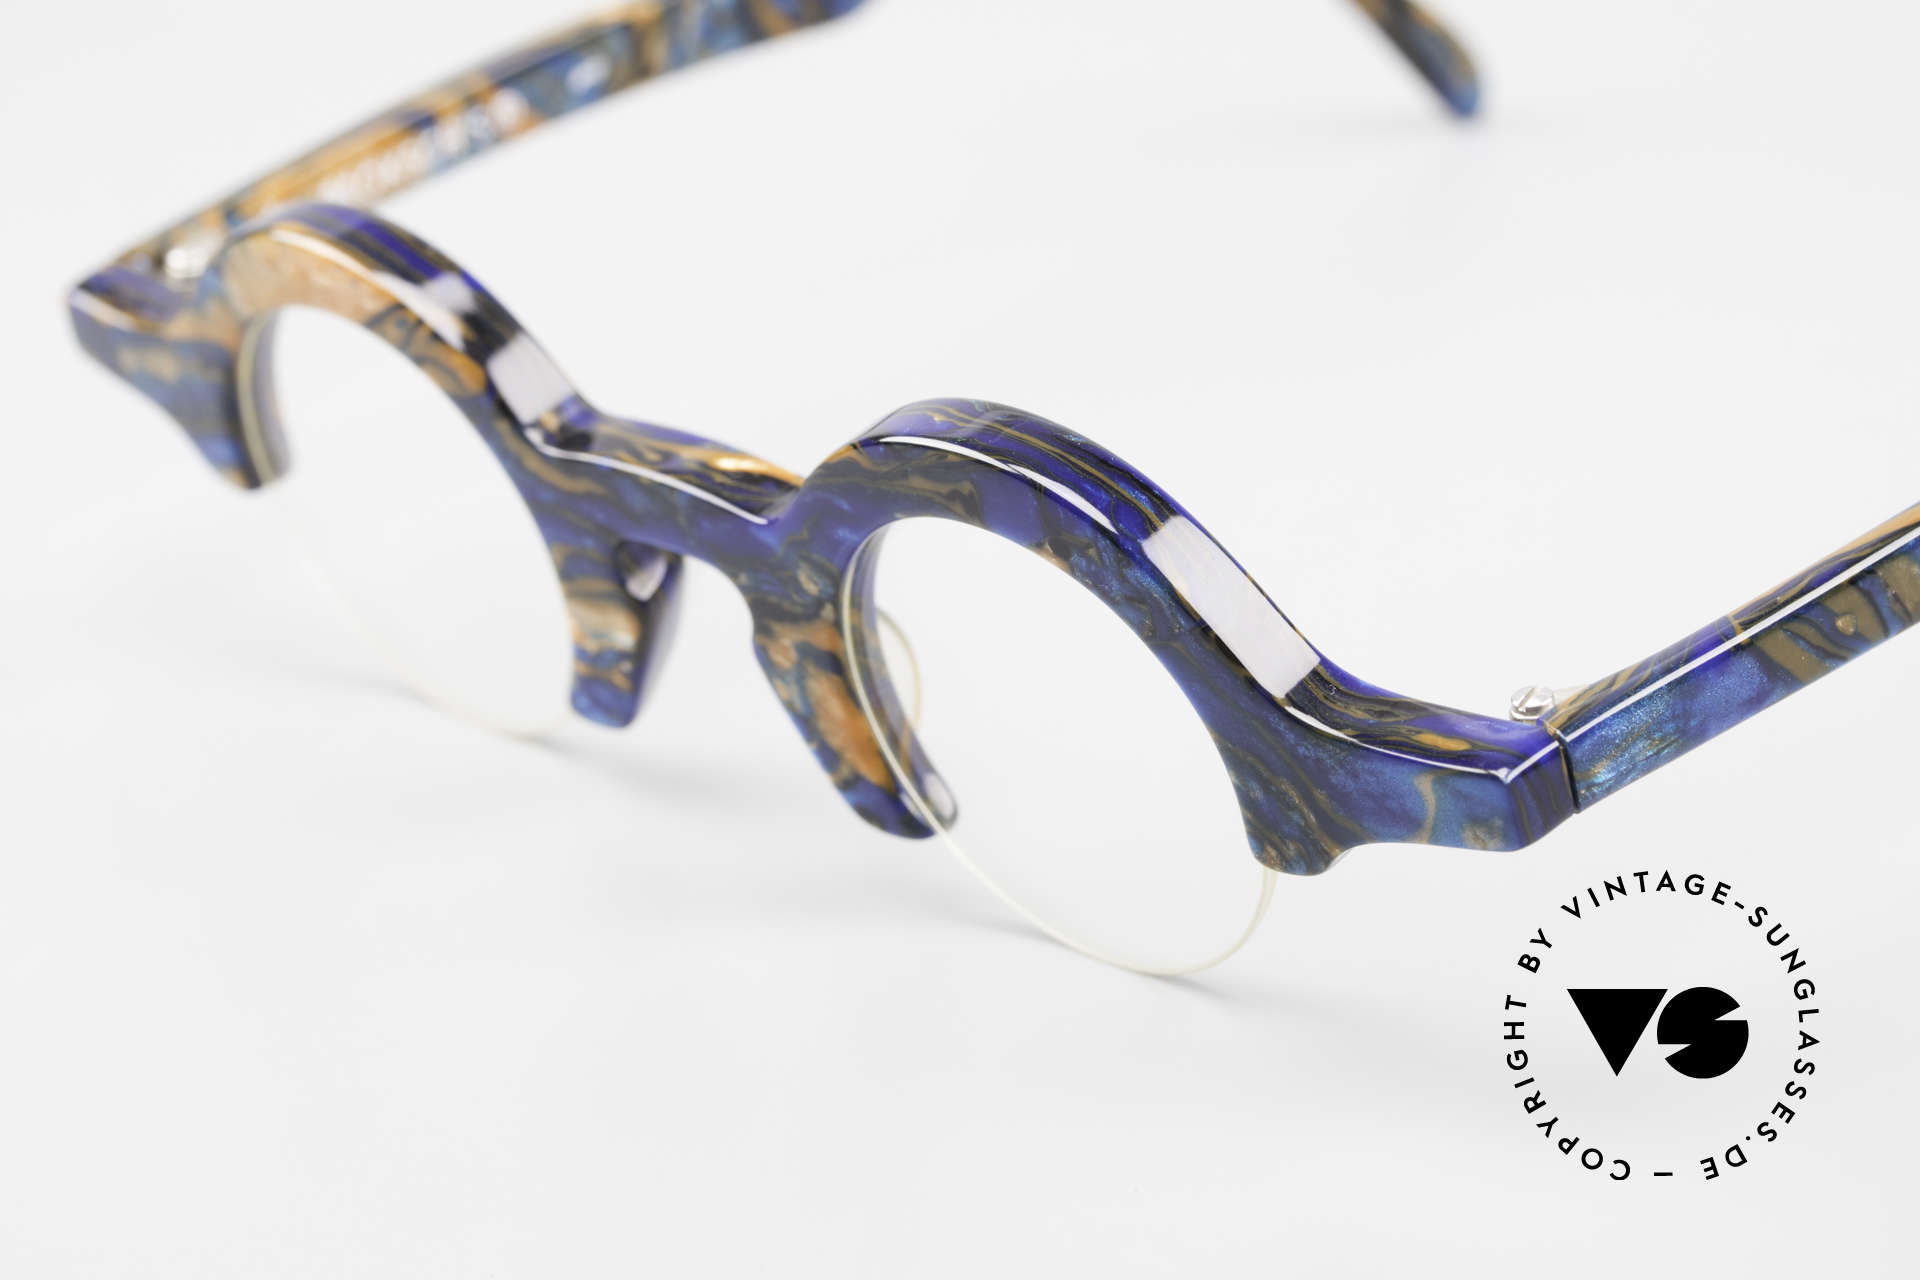 Proksch's A2 Futuristic Round 90's Eyeglasses, never worn (like all our vintage designer frames), Made for Men and Women